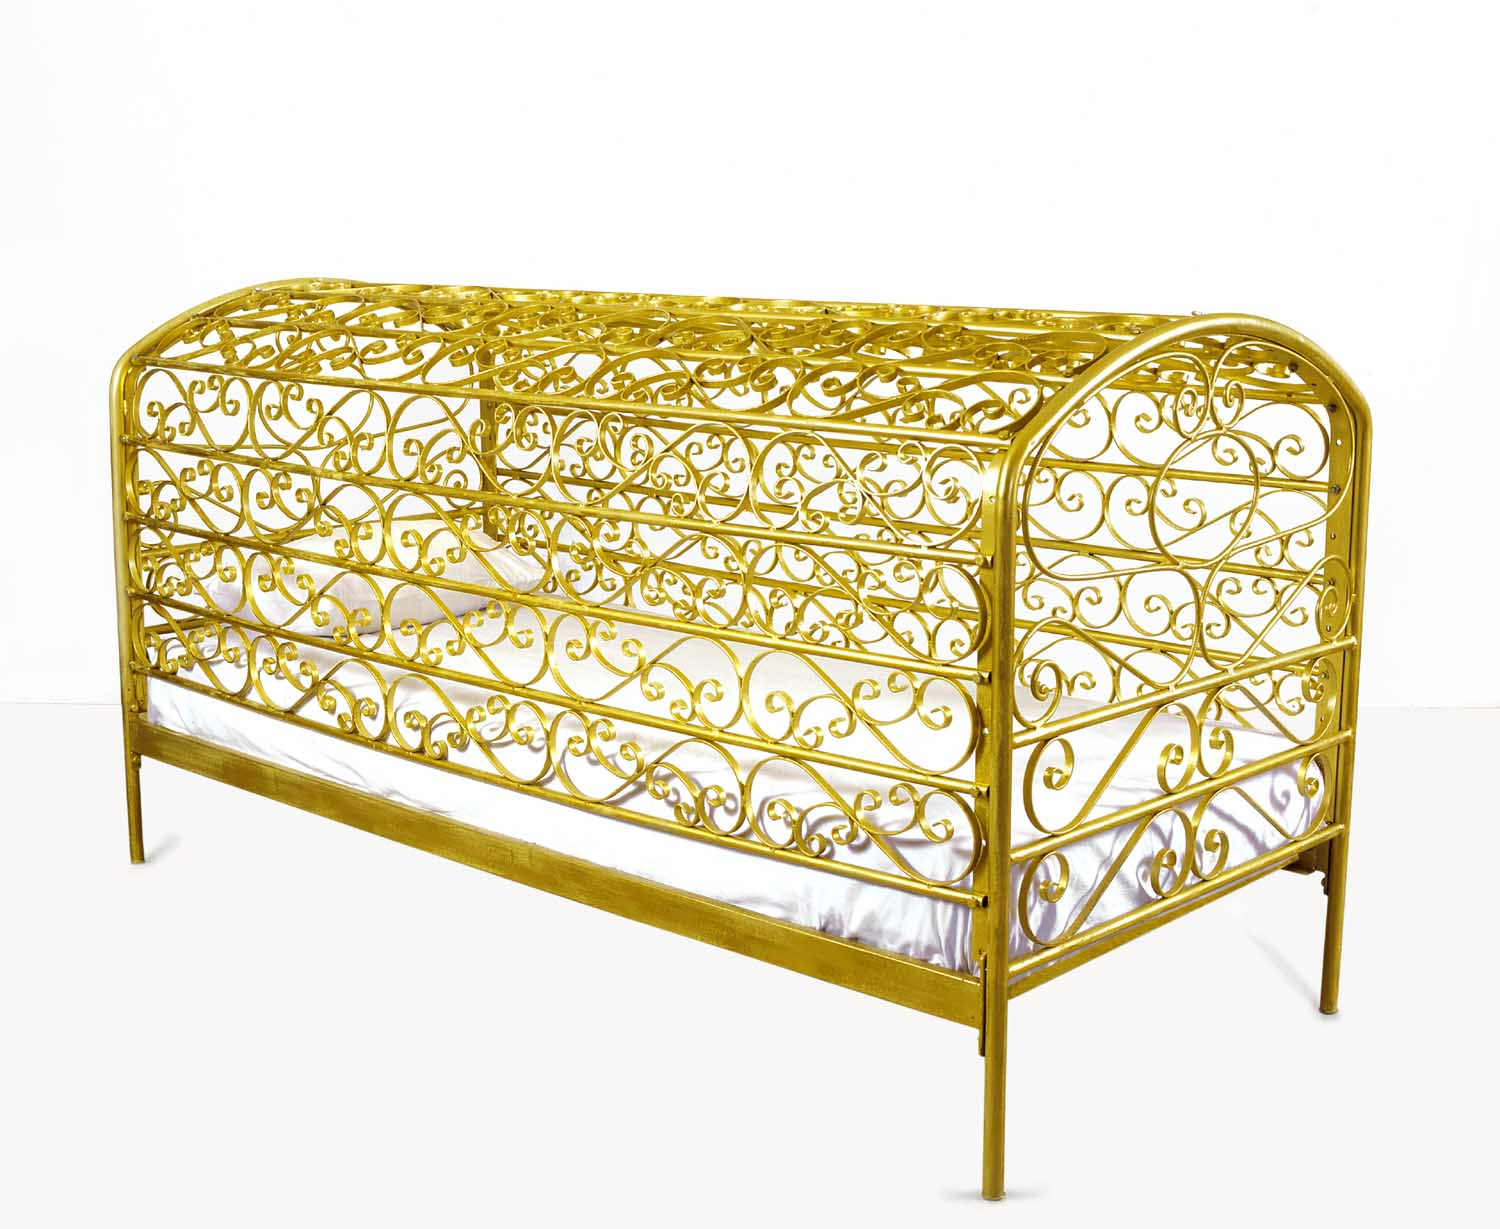 Maro Michalakakos   Allerleirauh   Metal frame, mattress, cotton sheets, pillow  81x43x36 inches